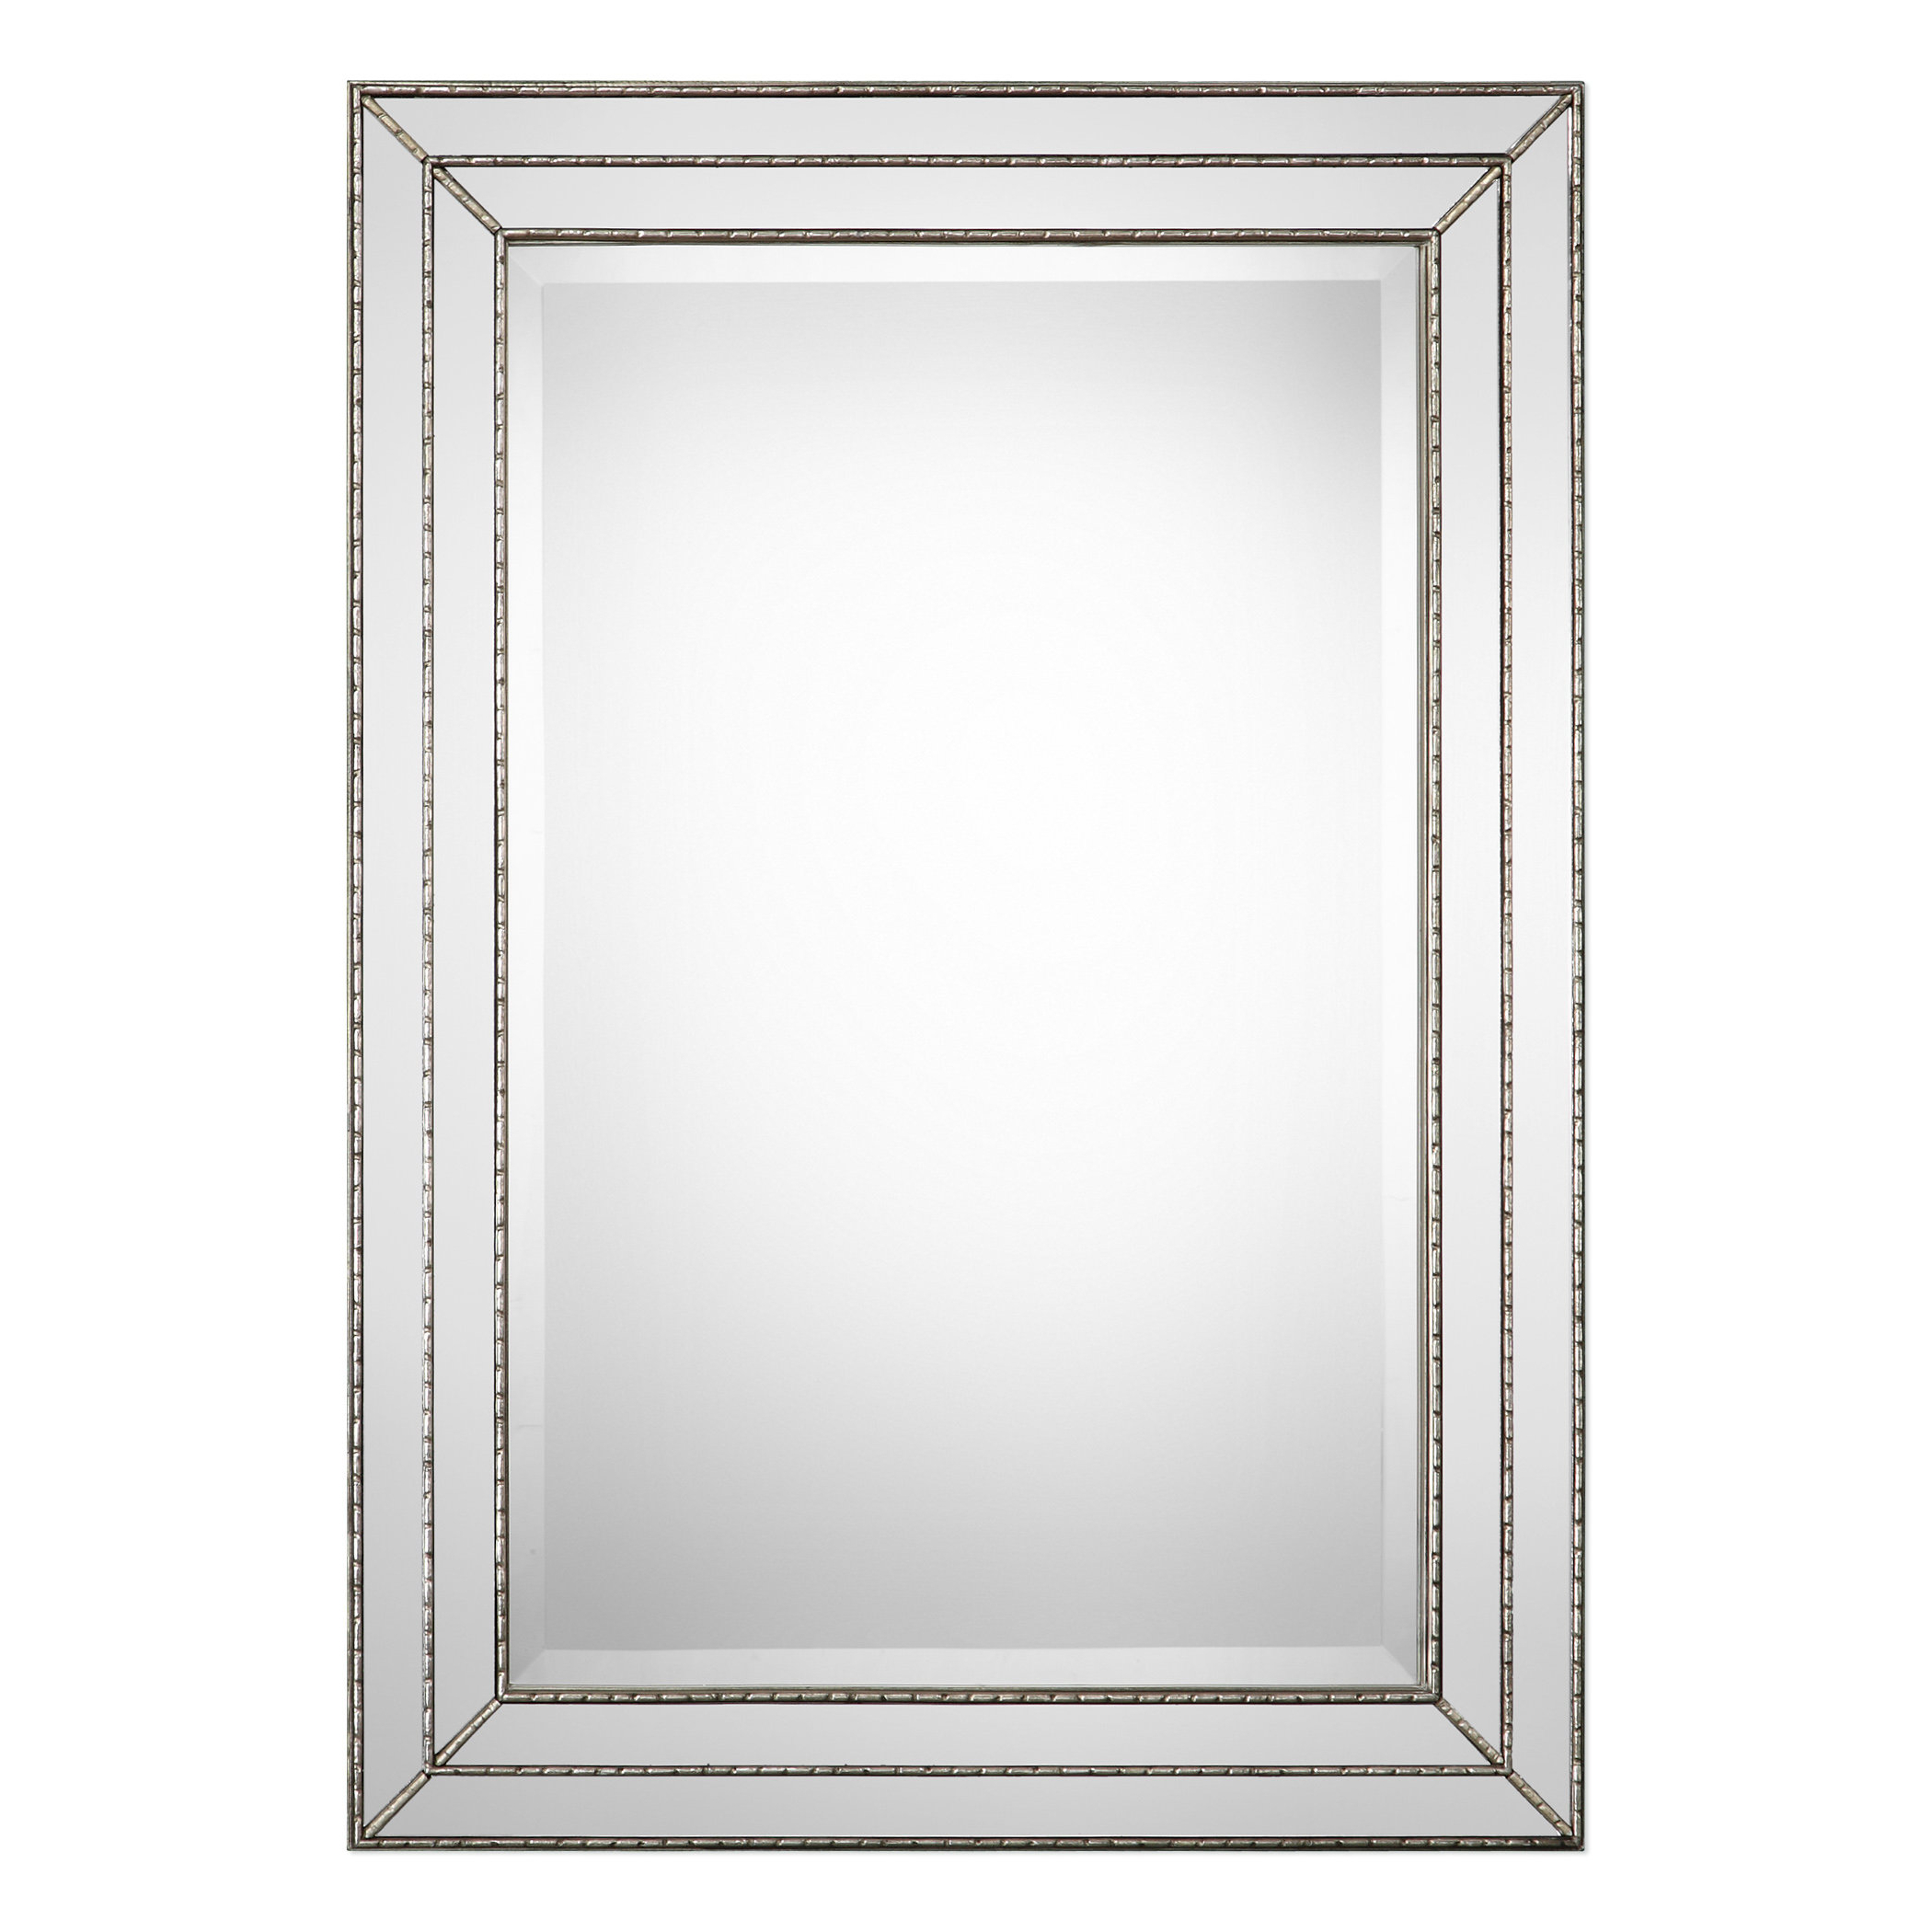 Trendy Greyleigh Willacoochee Traditional Beveled Accent Mirror Pertaining To Ulus Accent Mirrors (Gallery 16 of 20)